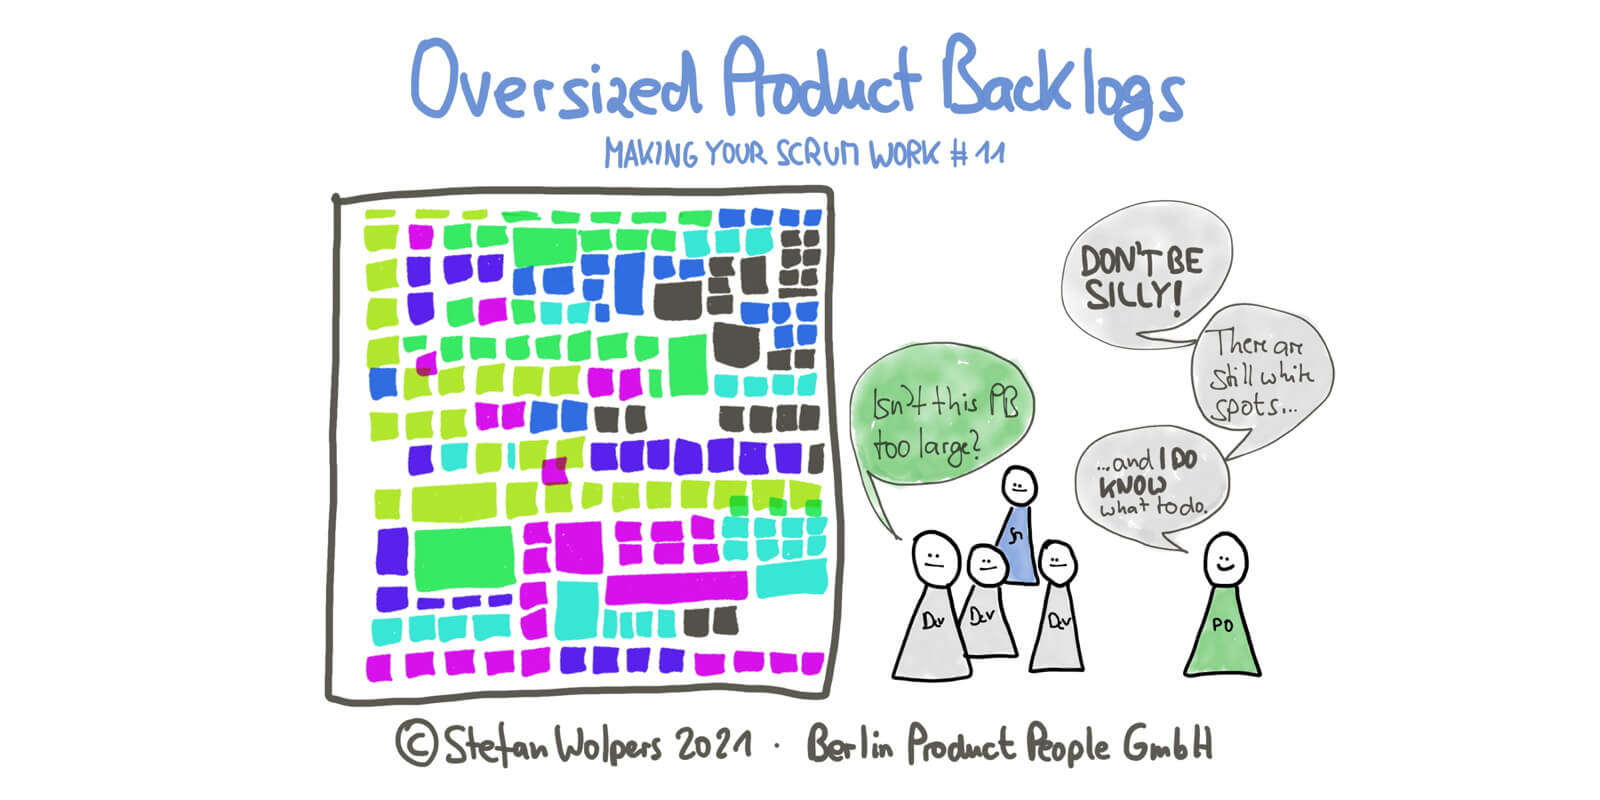 The Oversized Product Backlog Will Cost You Dearly — Making Your Scrum Work #11